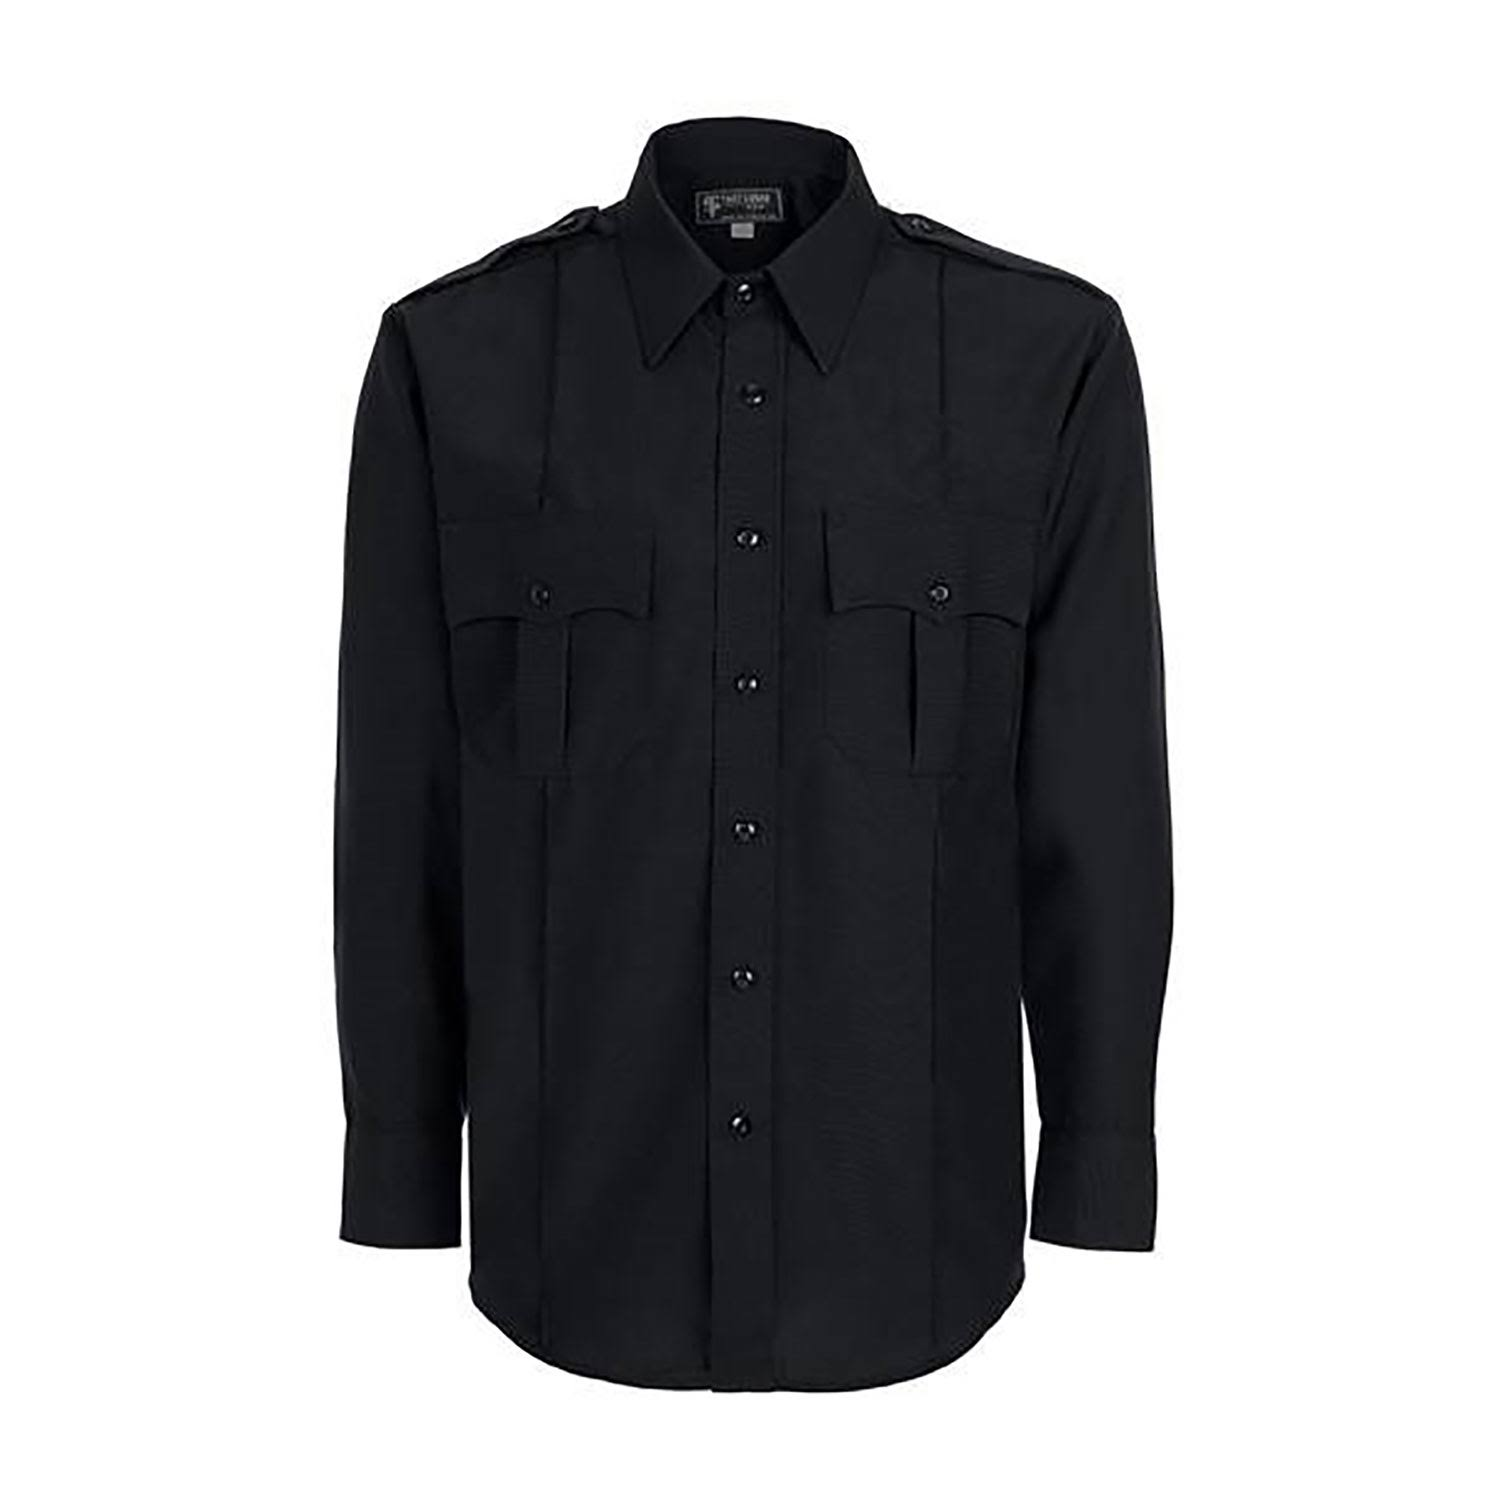 Tact Squad 100% Polyester Shirt - Nickel - 8002N-L/R